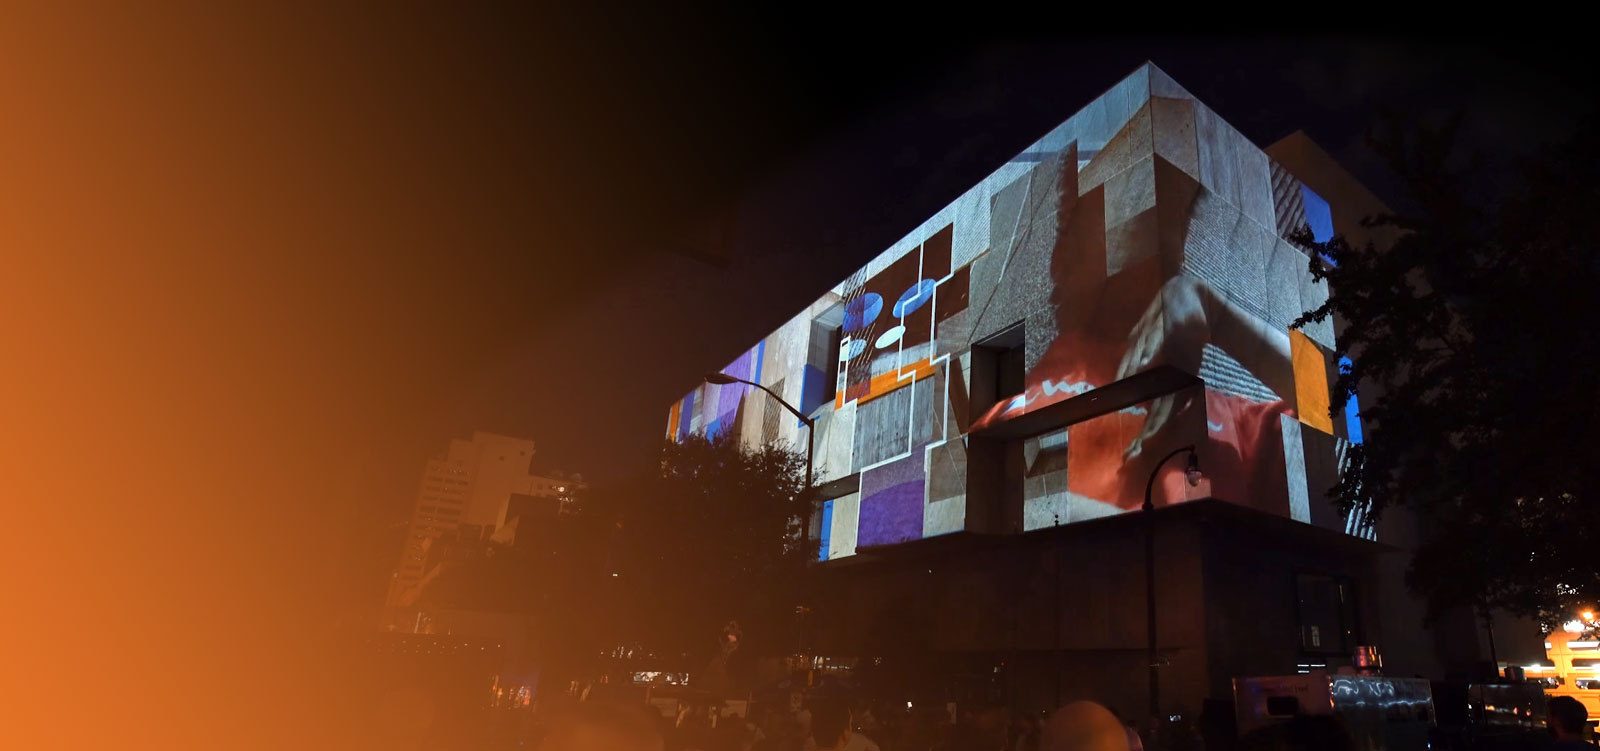 Projection Mapping | Building Transformation Background